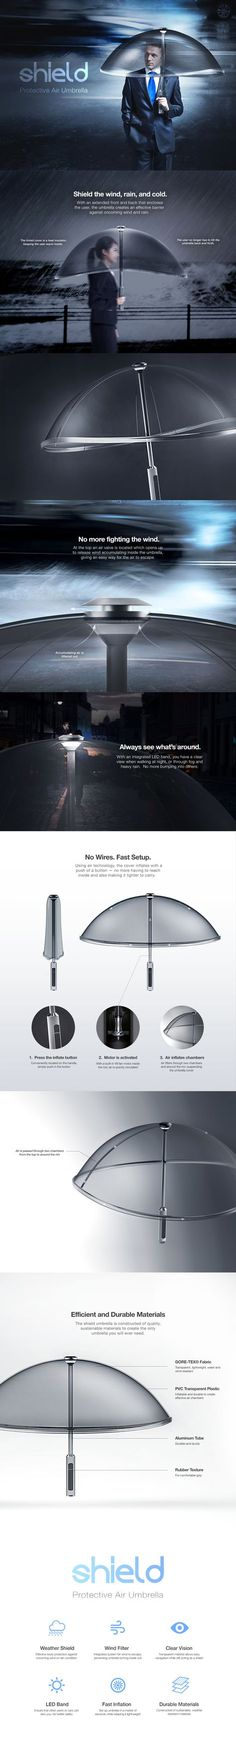 "Shield Air Umbrella""https://www.behance.net/gallery/56384333/Shield-Air-Umbrella"